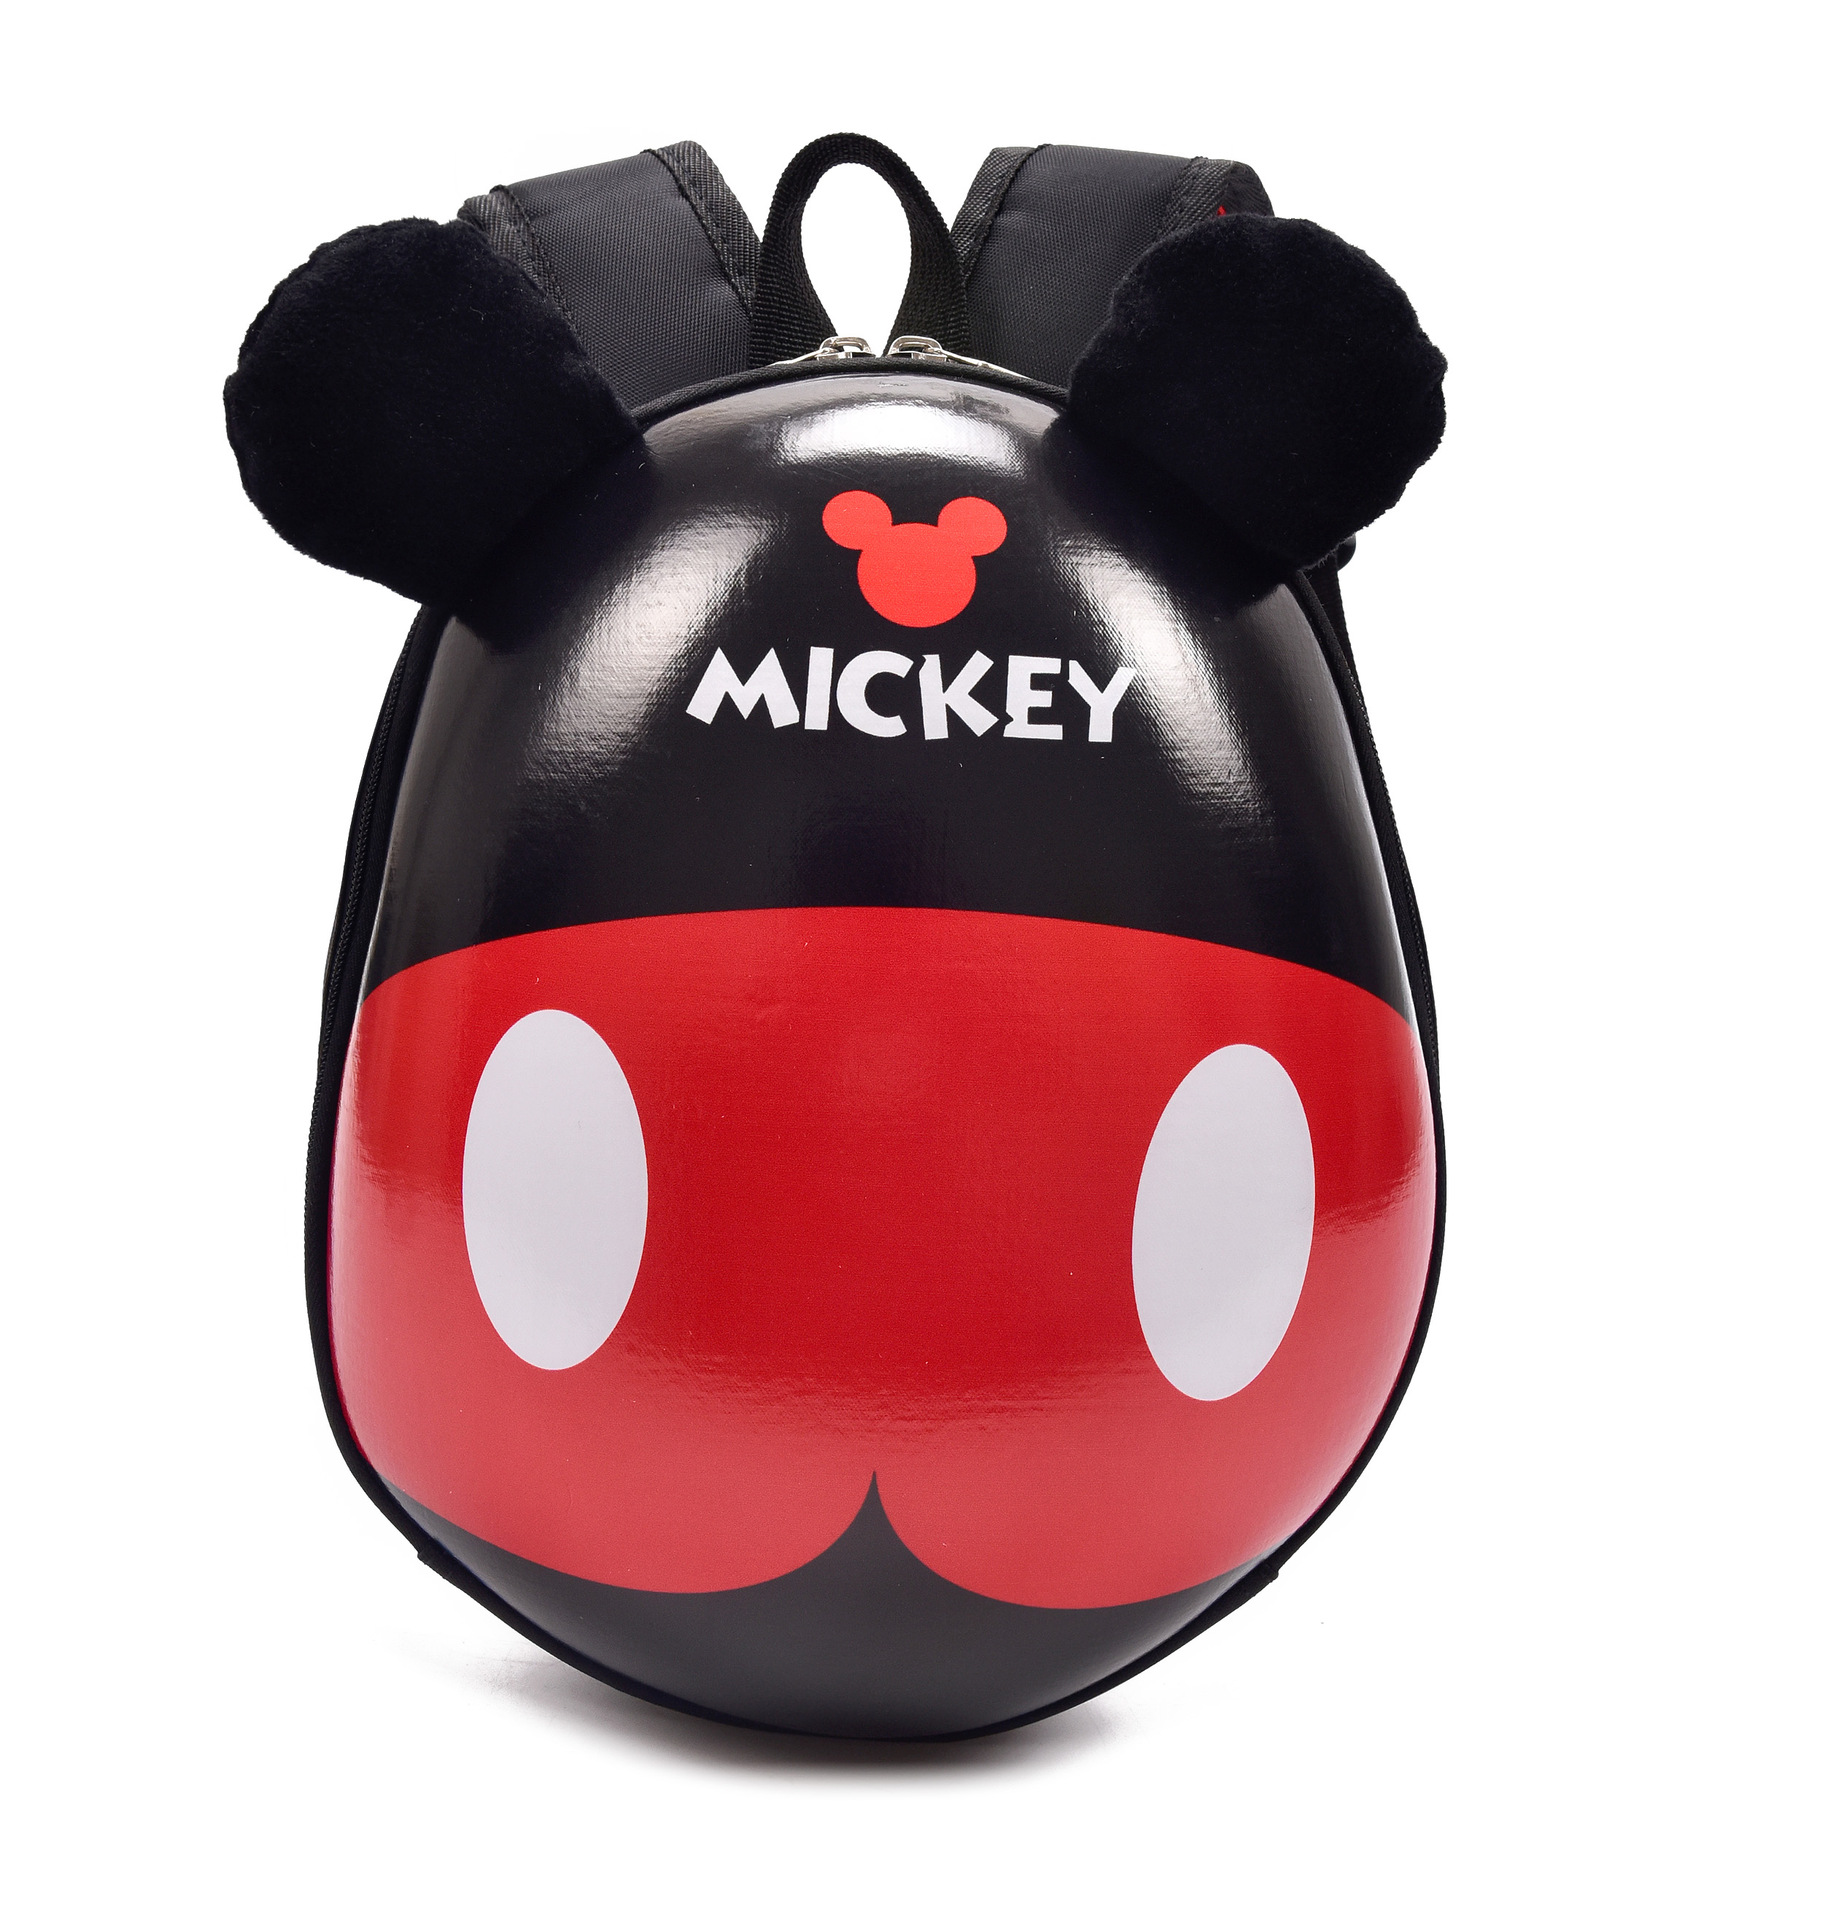 2018 Cartoon Minnie Mickey Kinder Rucksäcke Kinder Kindergarten Anti-verloren Rucksack Baby Schule Taschen Satchel Für Jungen Und Mädchen Offensichtlicher Effekt